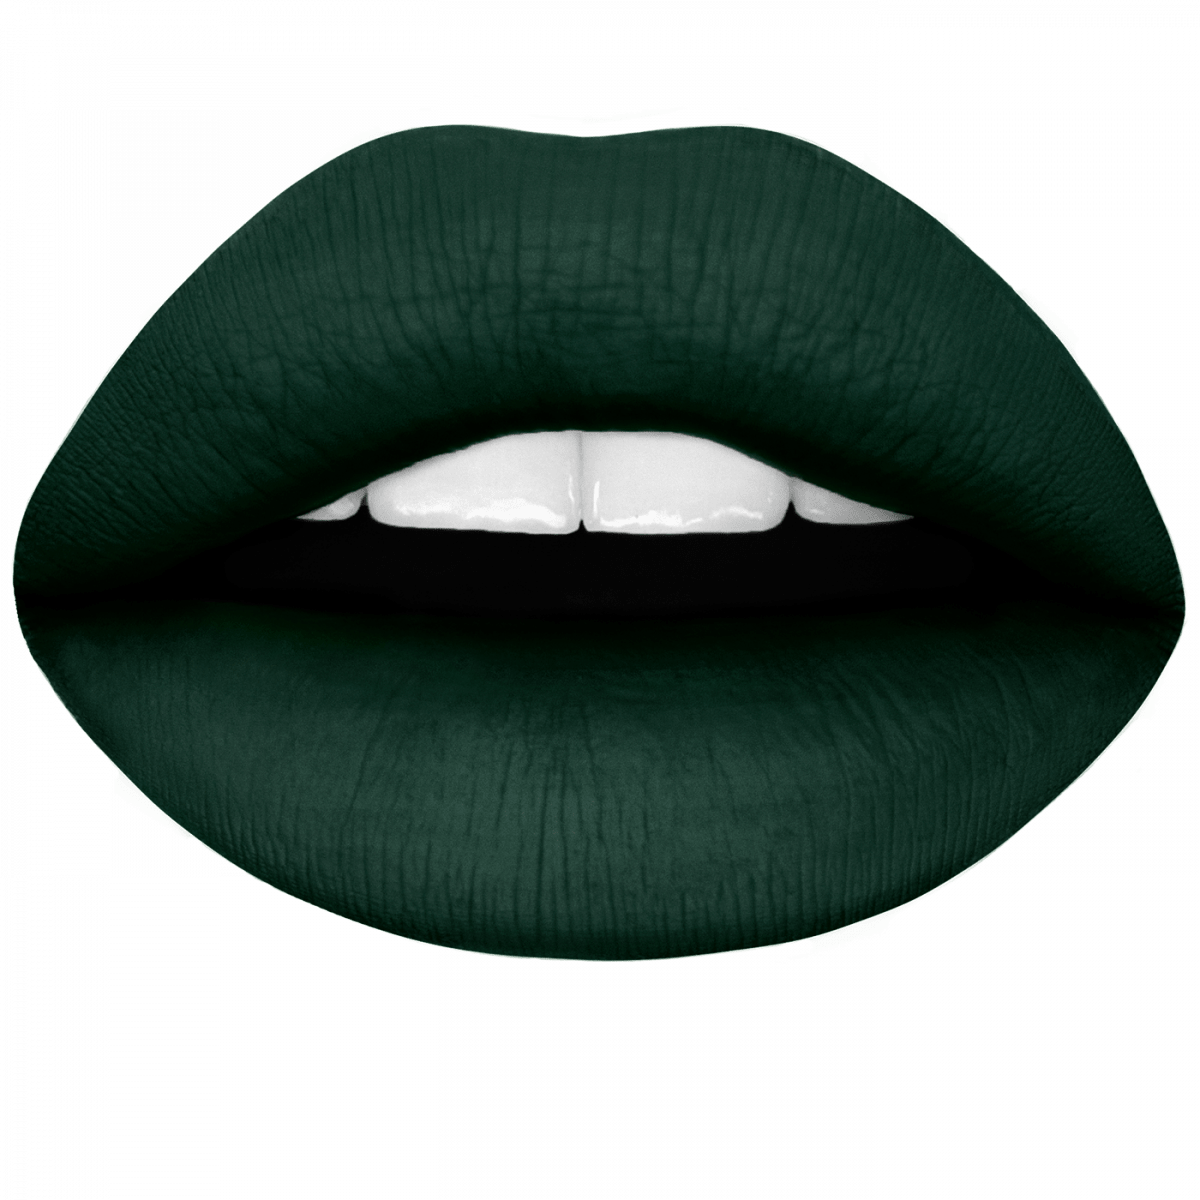 Liprechaun KissMe green lipstick